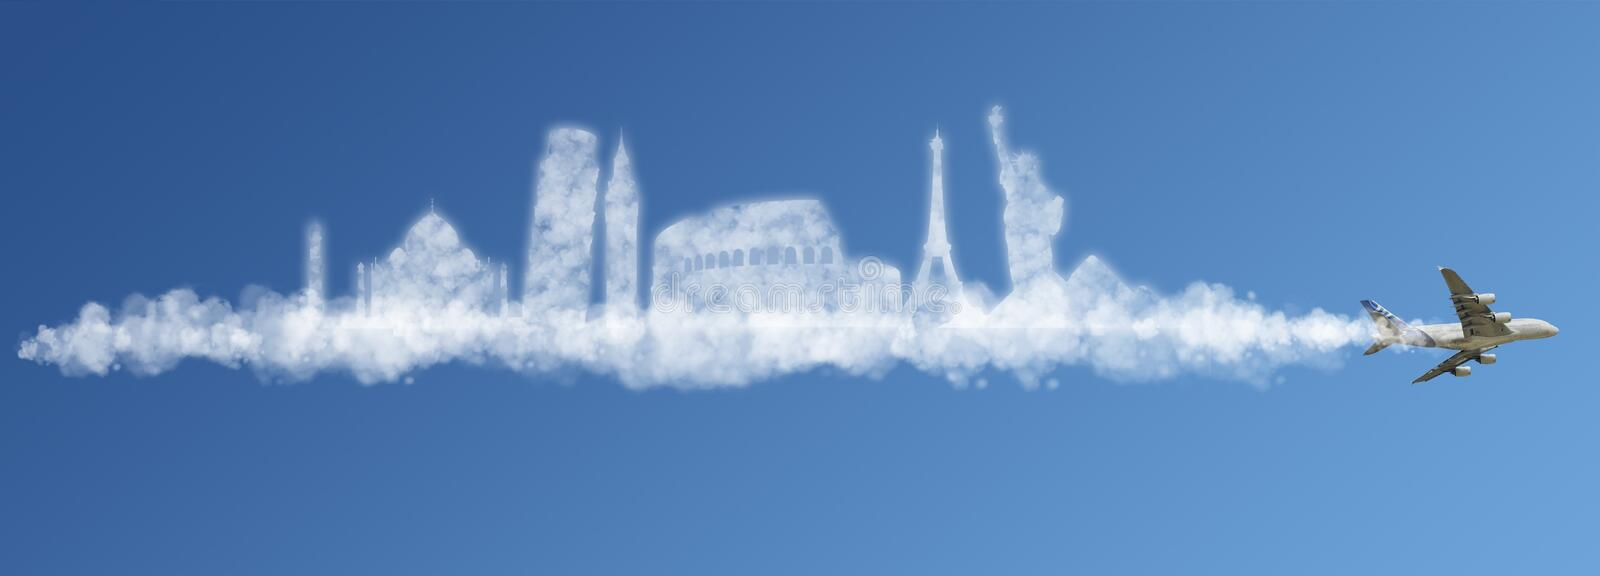 Travel the world cloud concept. Made with photoshop cs4